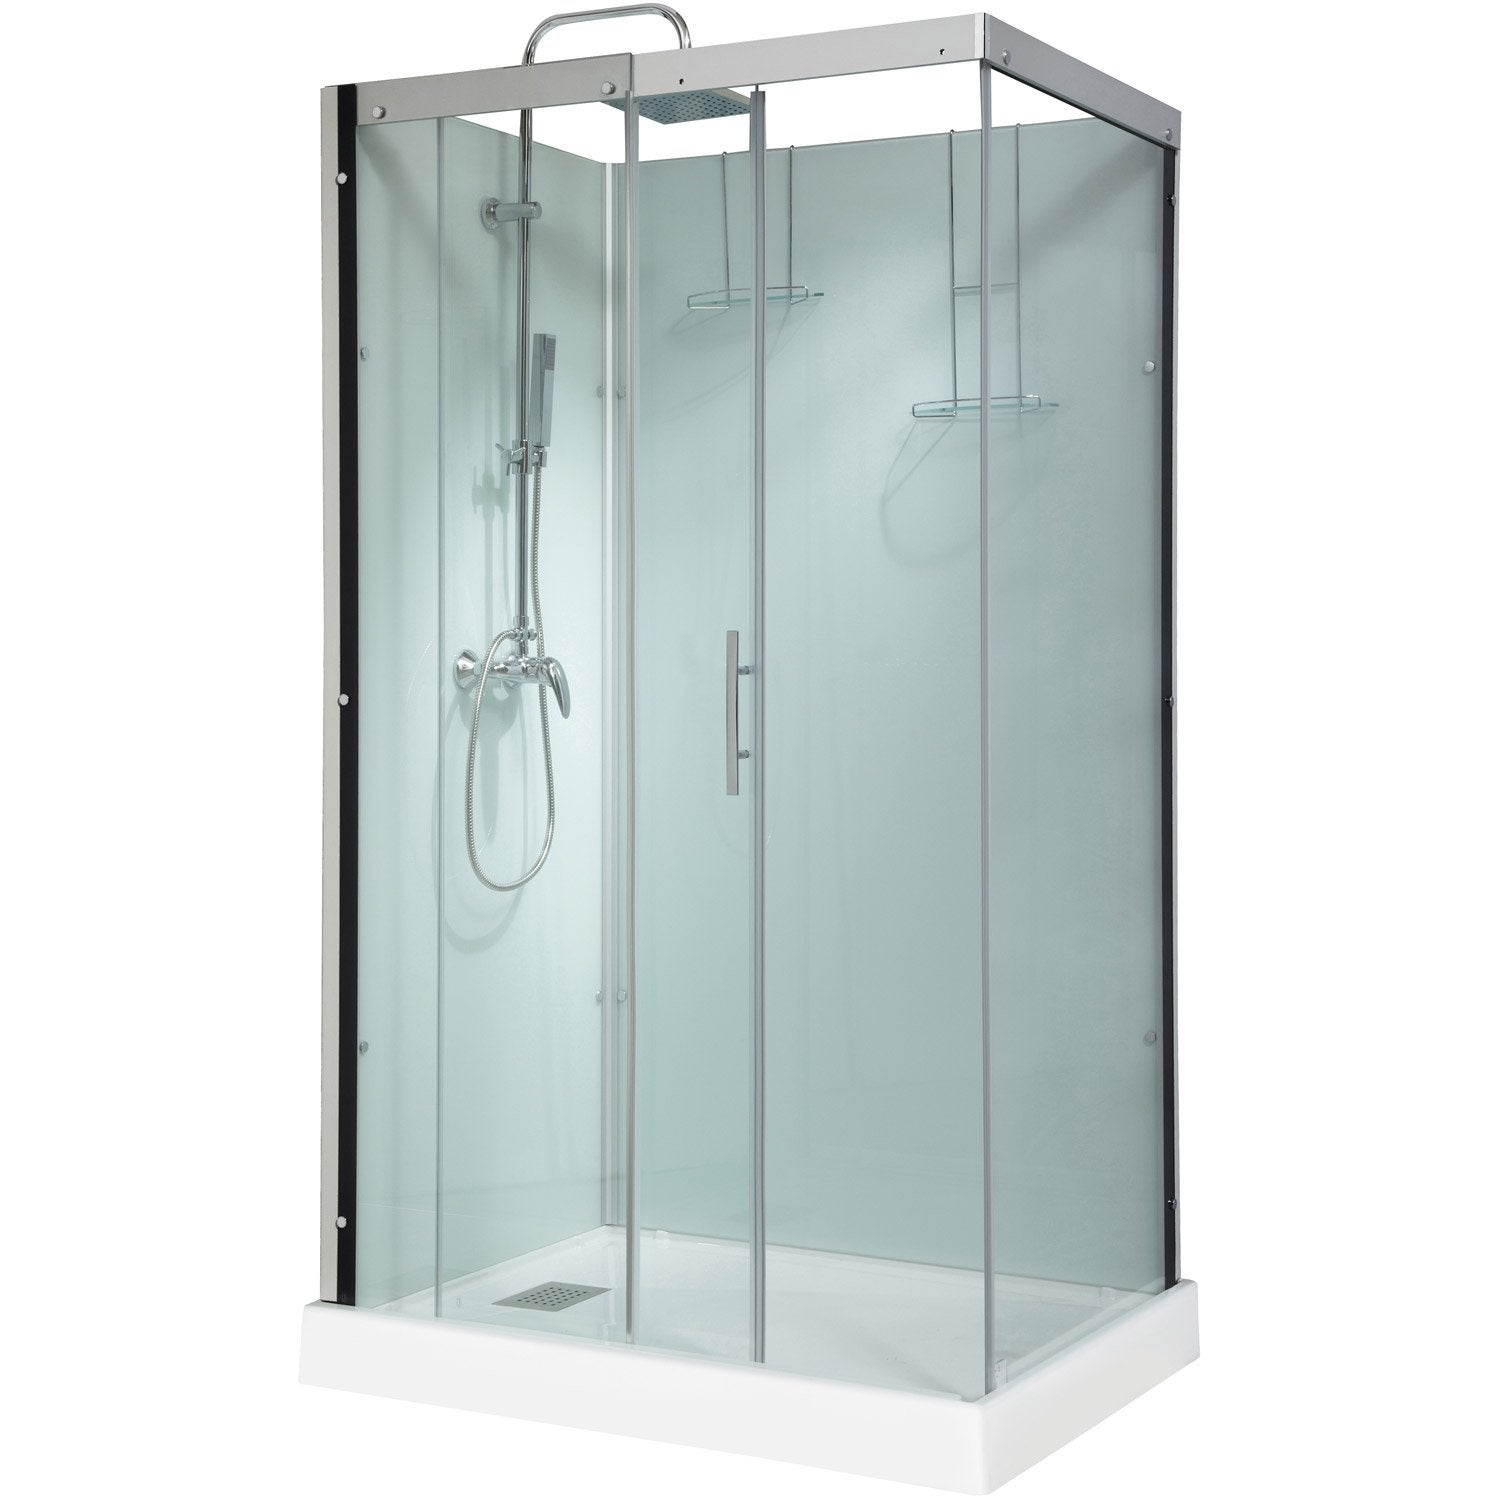 Cabine de douche rectangulaire 120x90 cm thalaglass 2 for Leroy merlin mitigeur bain douche